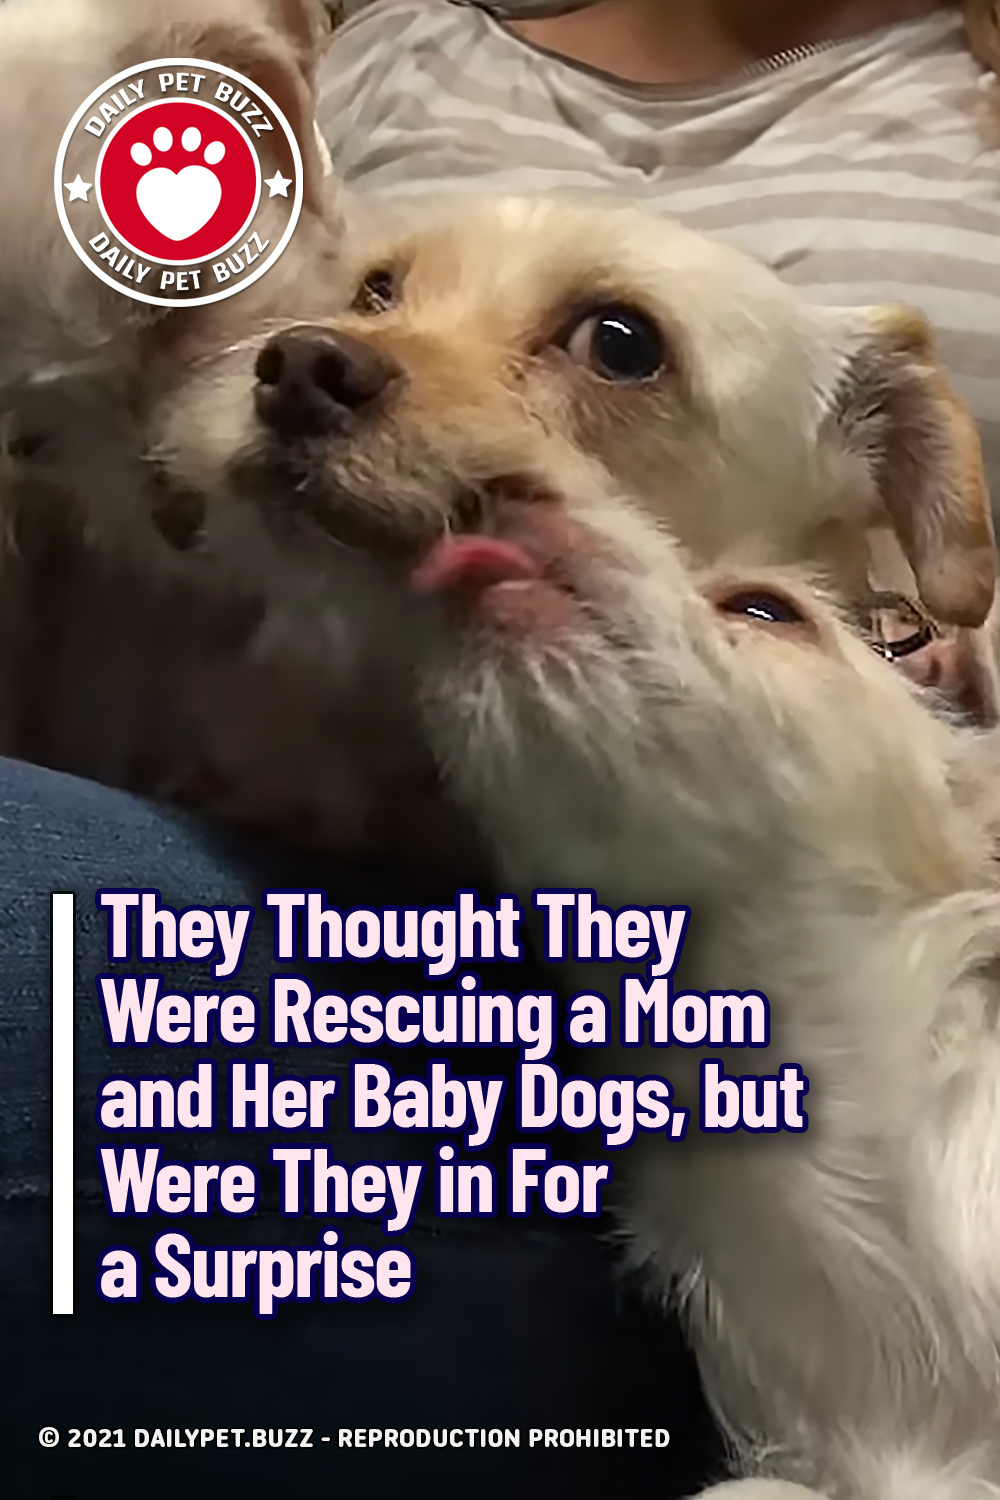 They Thought They Were Rescuing a Mom and Her Baby Dogs, but Were They in For a Surprise